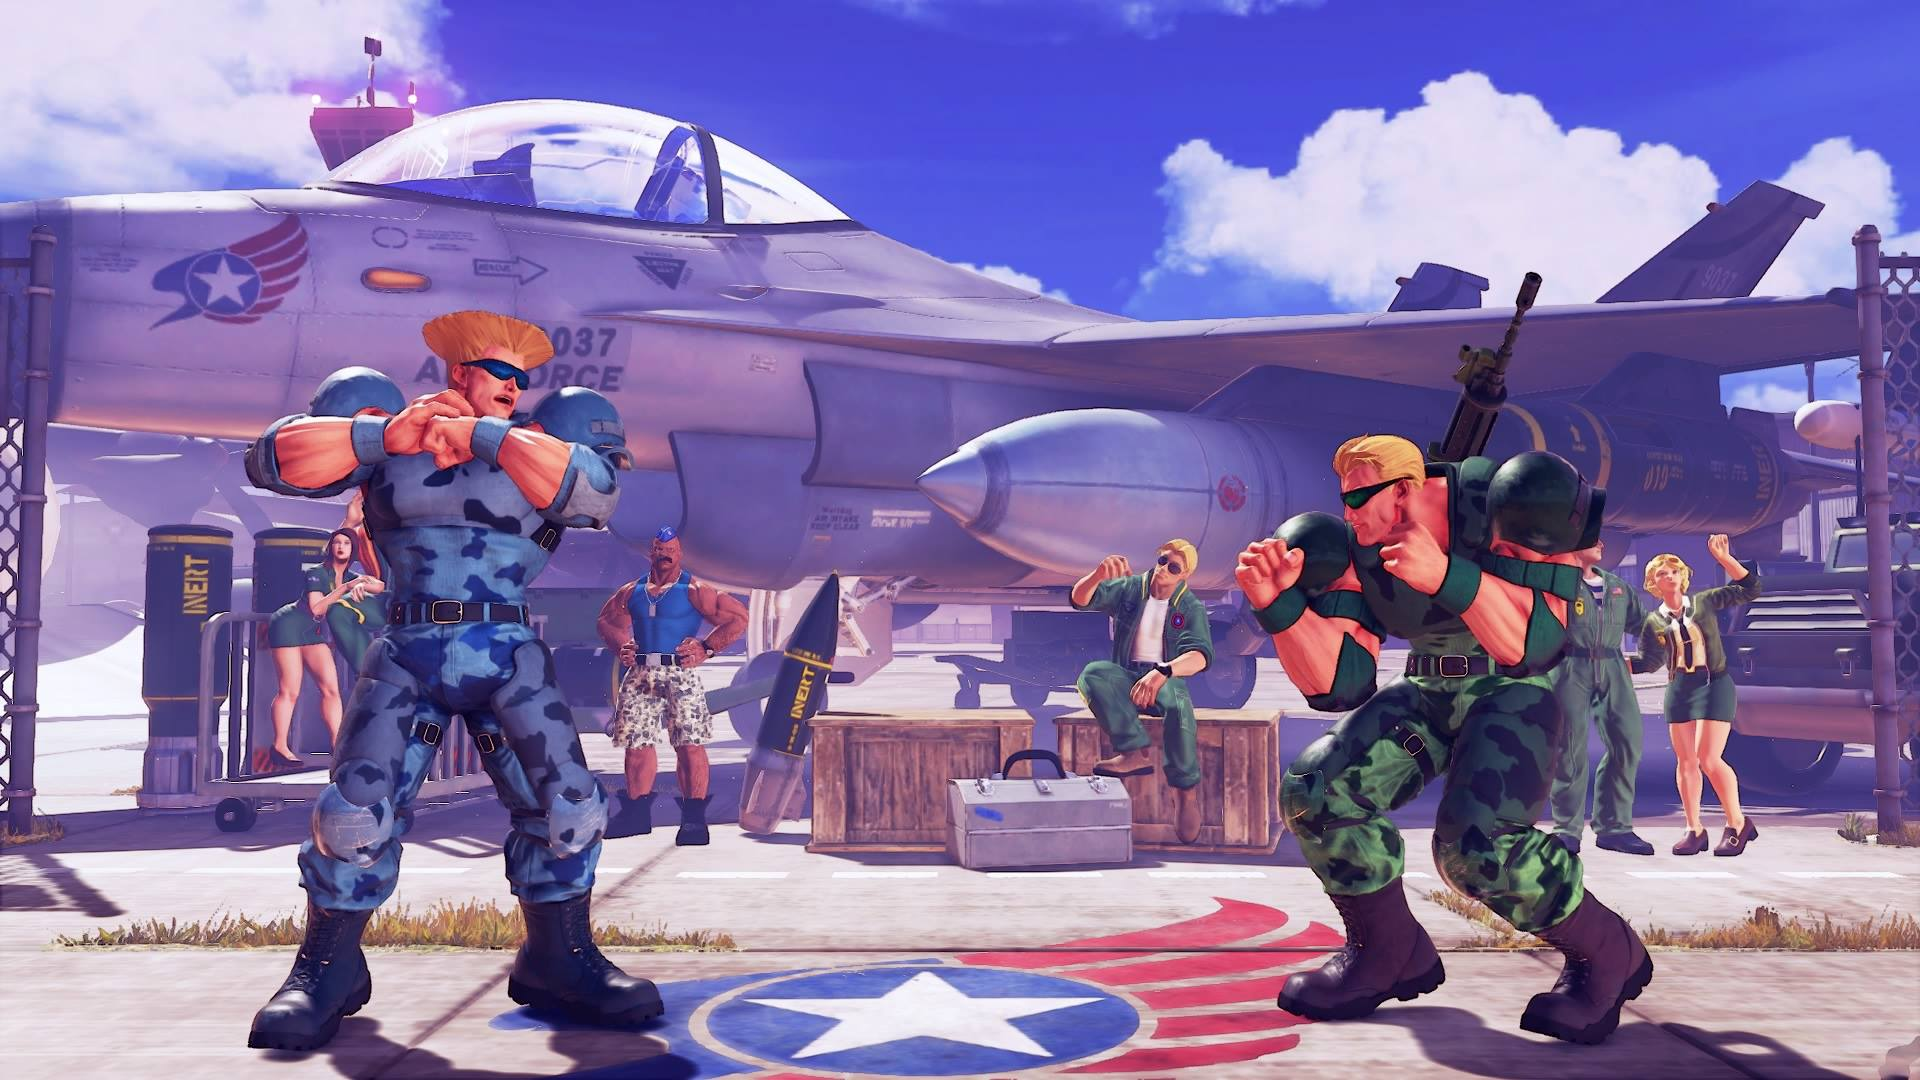 Guile's Nameless Solider colors 1 out of 5 image gallery